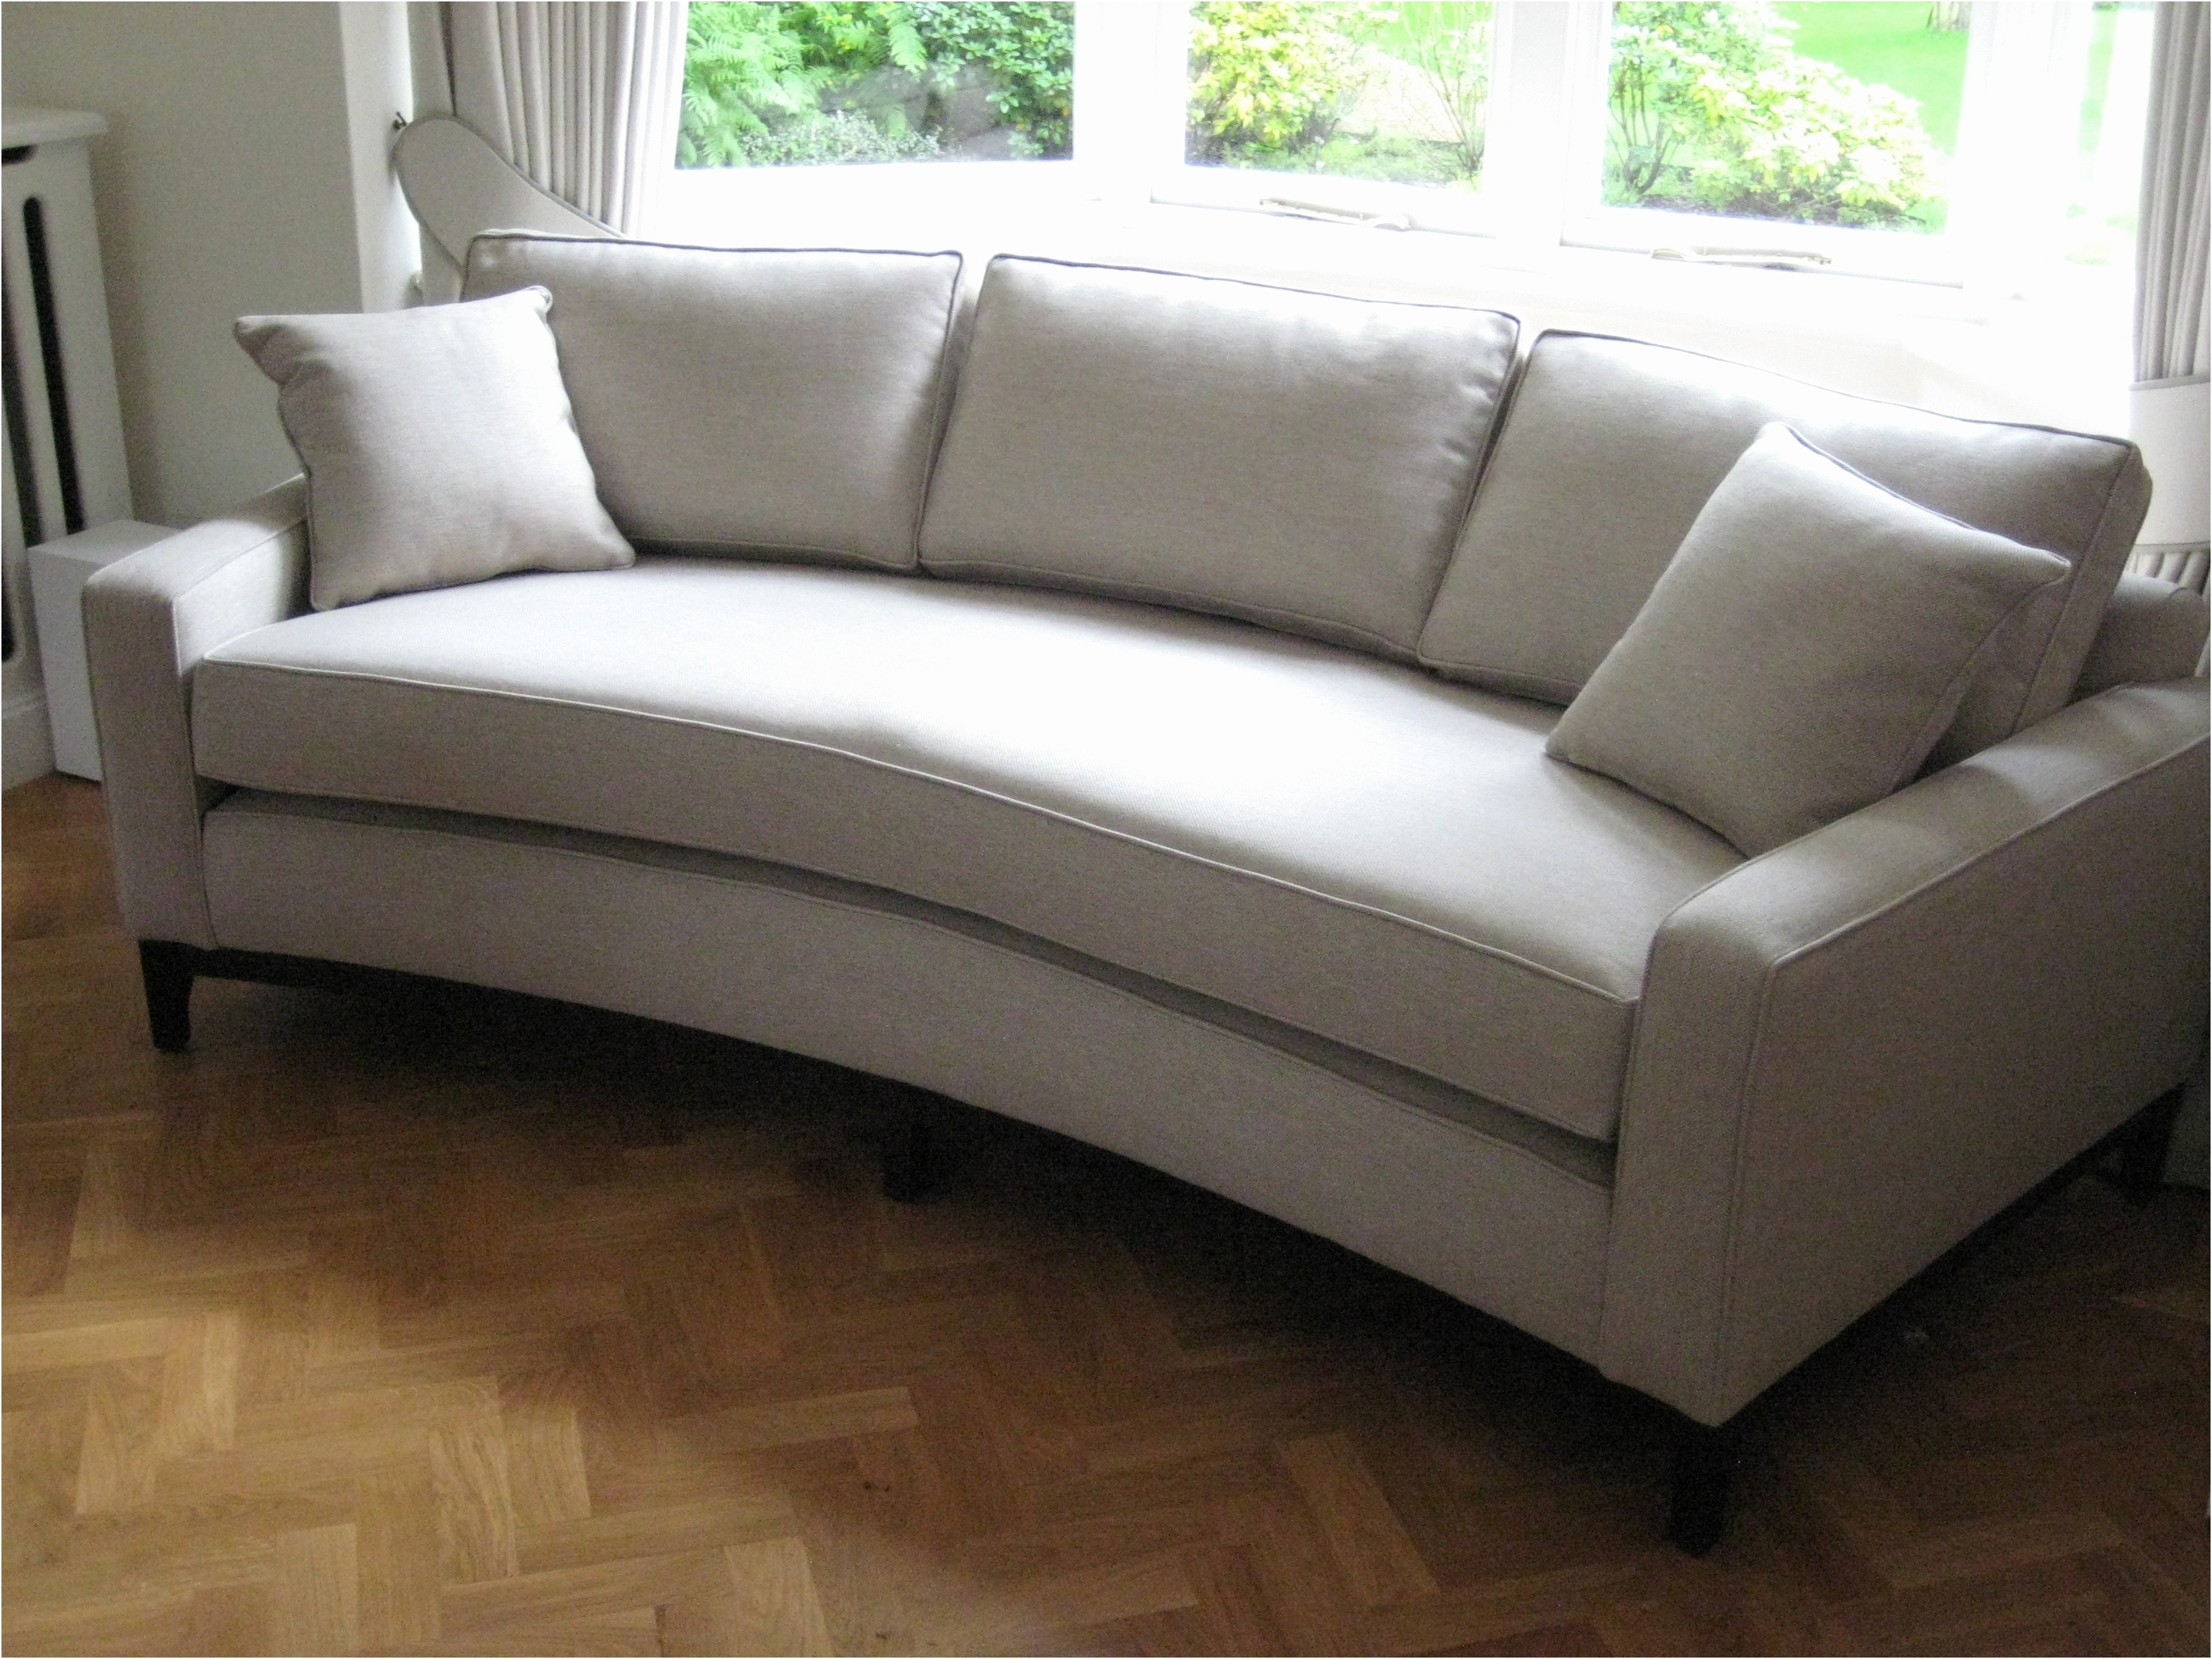 One Cushion Sofas For 2018 Sofas : Recliner Sofa One Cushion Couch Power Reclining Sofa (View 9 of 15)